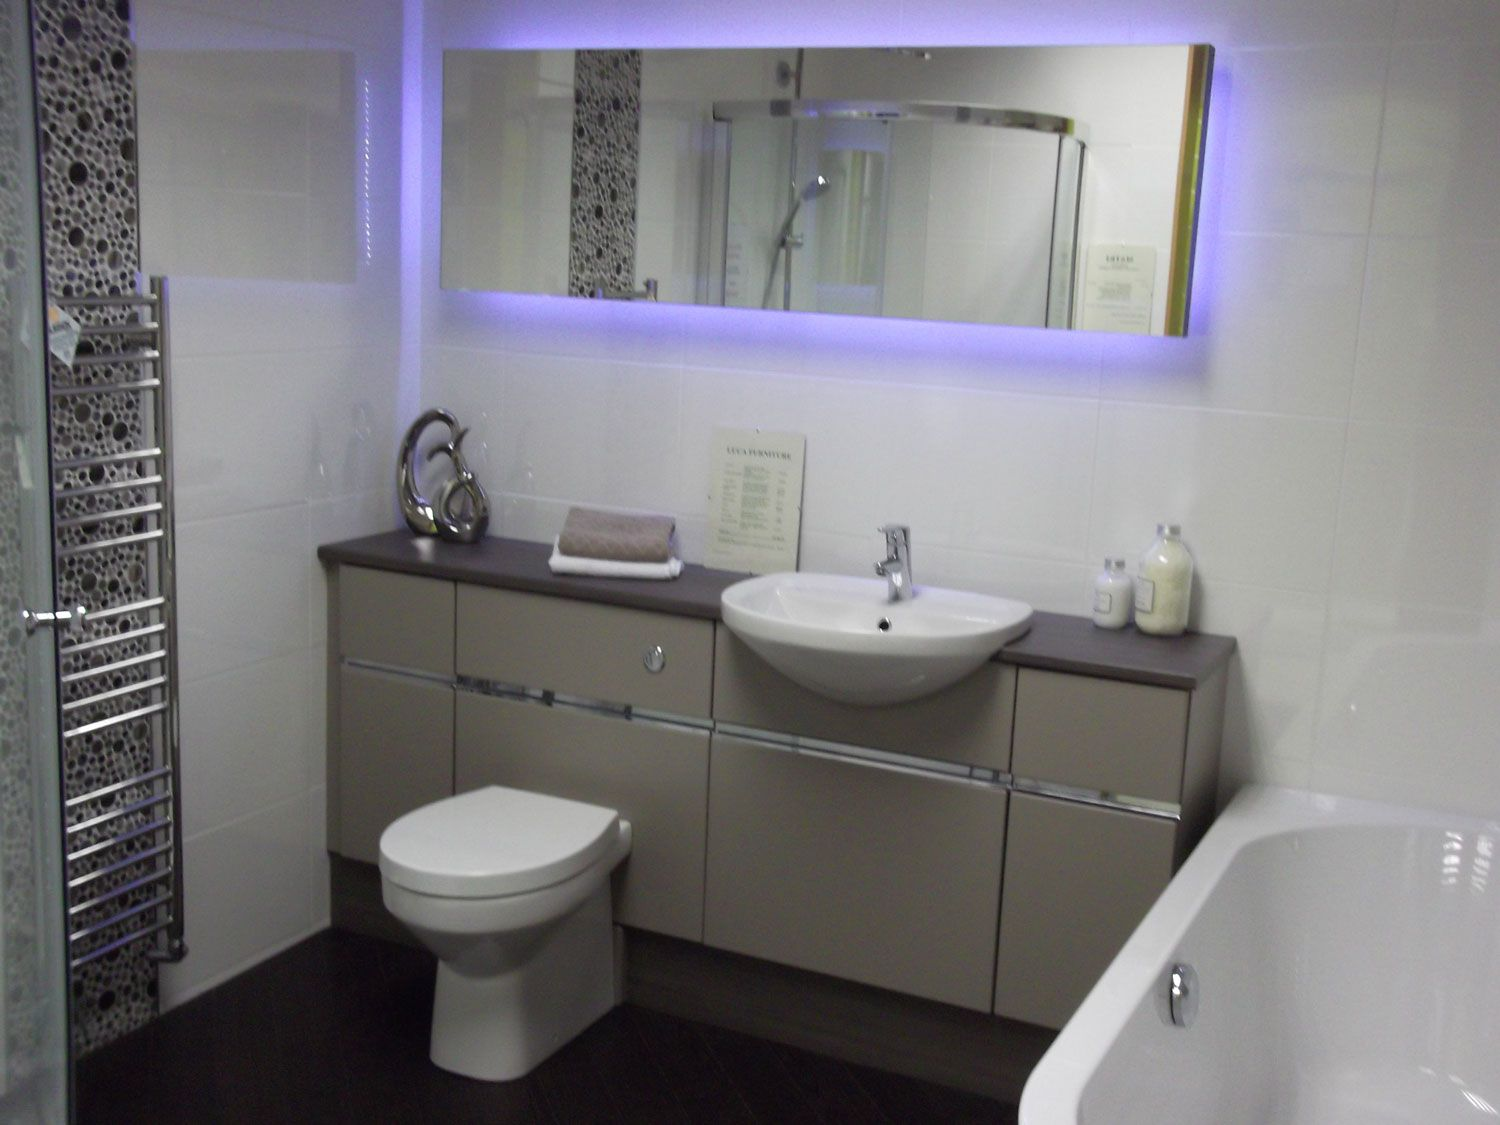 shades bathroom furniture uk%0A White Futuristic Fitted Bathroom Furniture With Wall Mounted